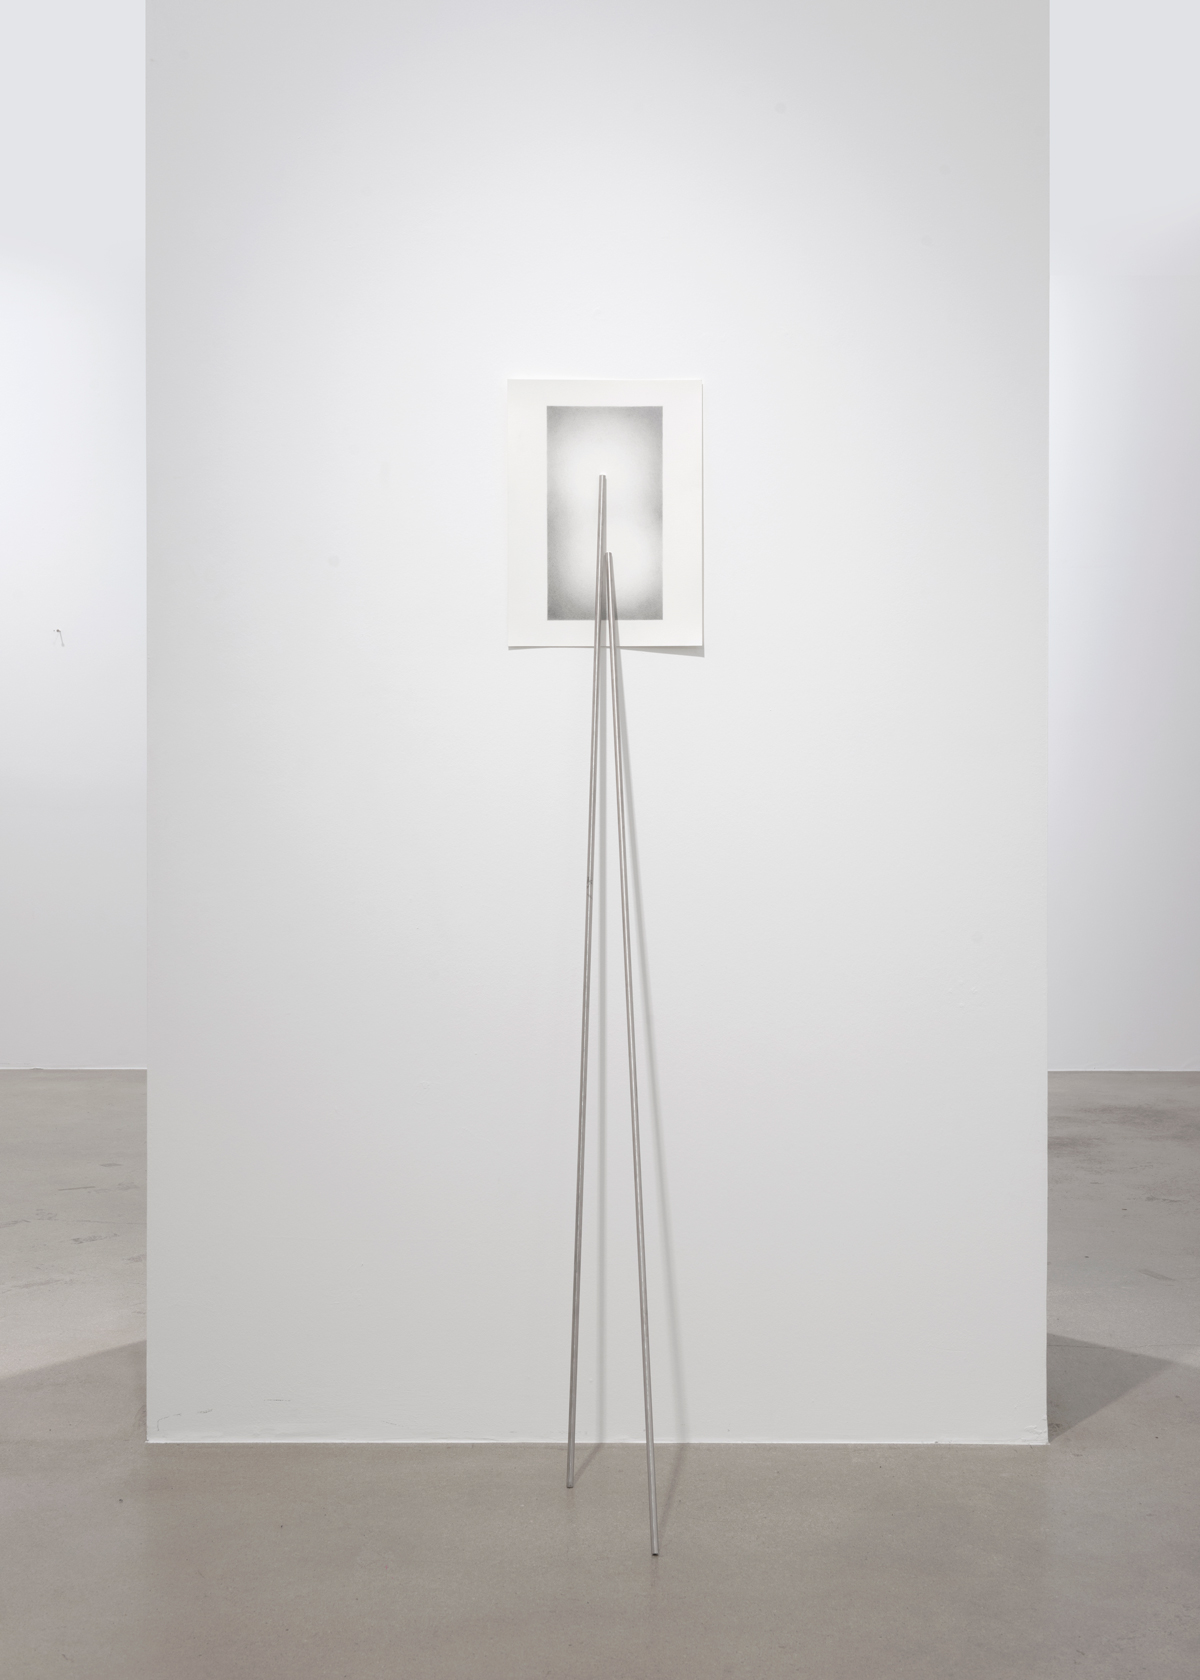 Kate Andrews, Prop I, 2021, Stainless steel and graphite on paper 42 x 29,7 cm (A3 paper) 150 cm (steel rods)